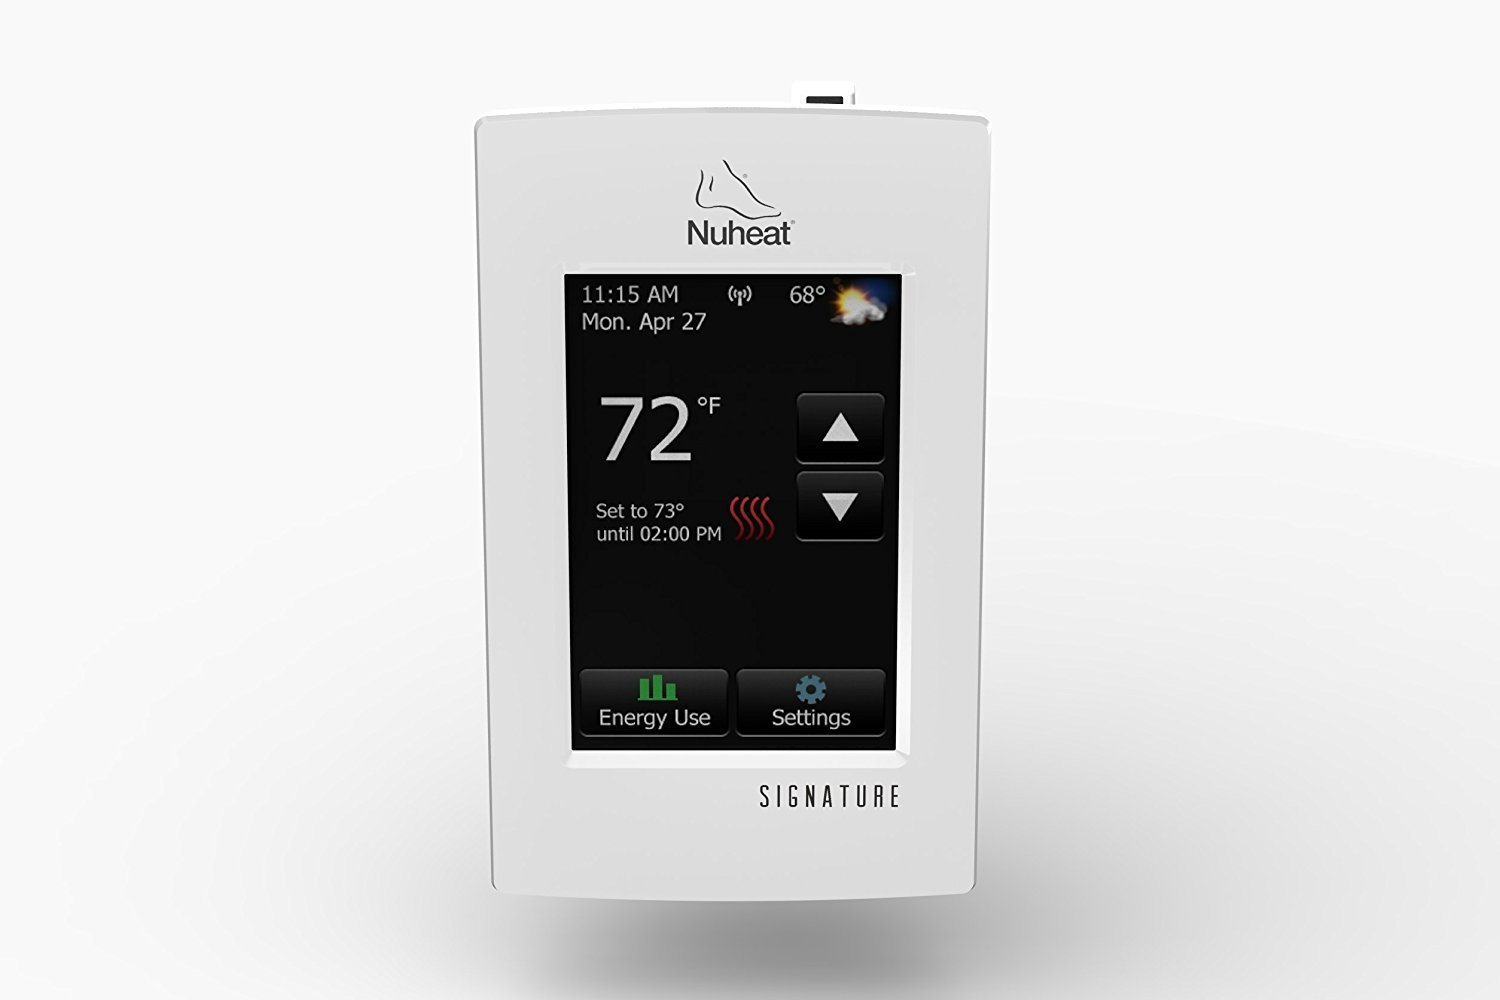 Nuheat SIGNATURE Programmable Dual-Voltage Thermostat with WiFi and Touchscreen Interface, Works with NEST by Nuheat